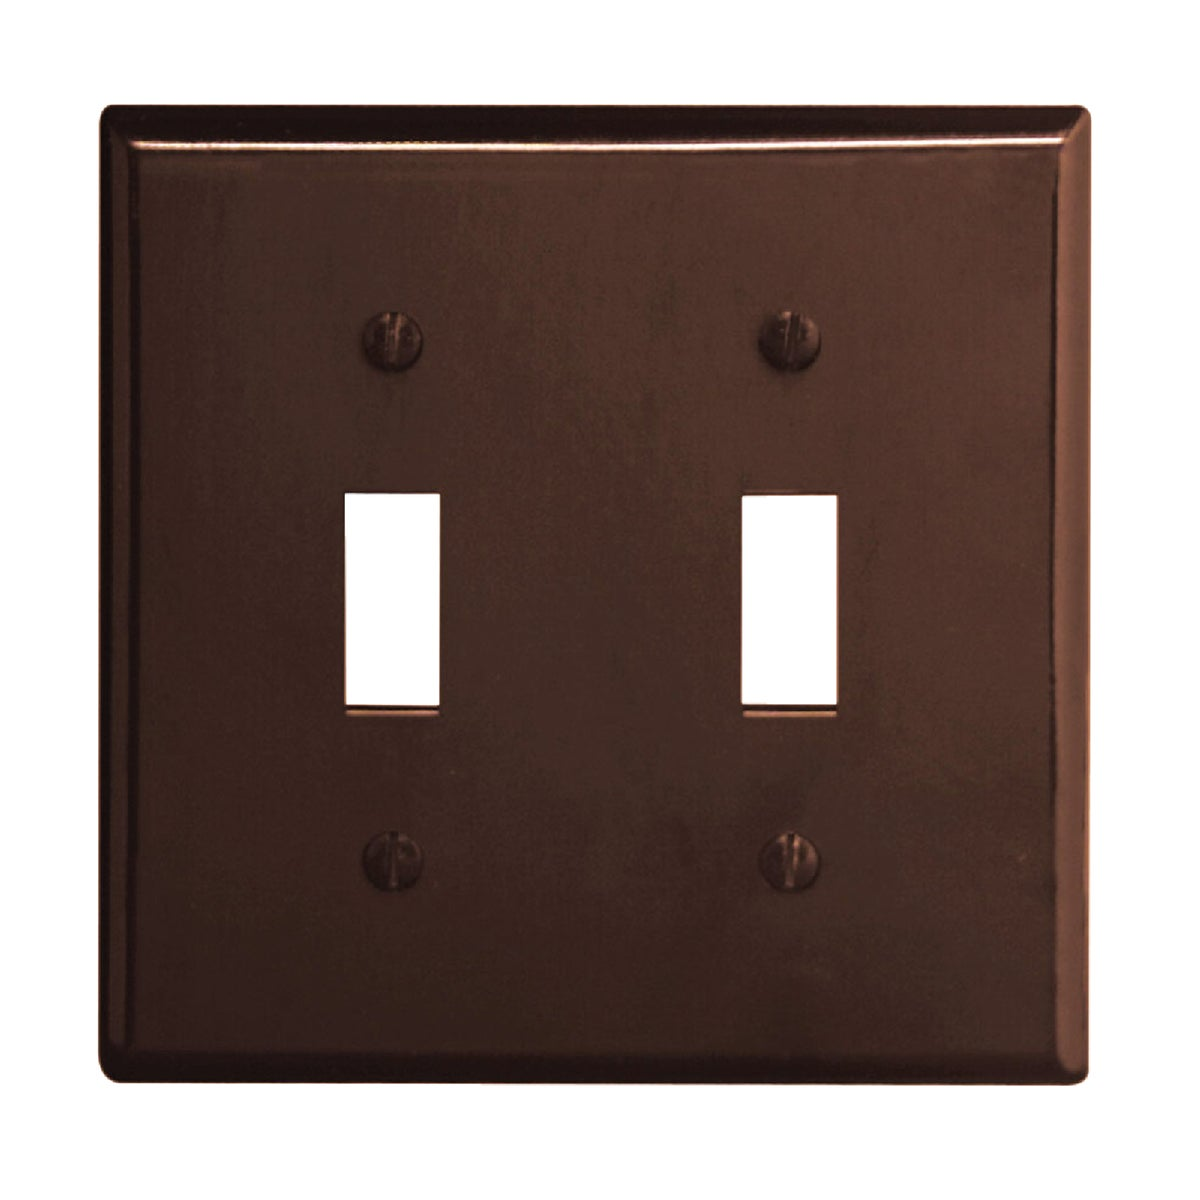 BRN 2-TOGGLE WALL PLATE - 85009 by Leviton Mfg Co